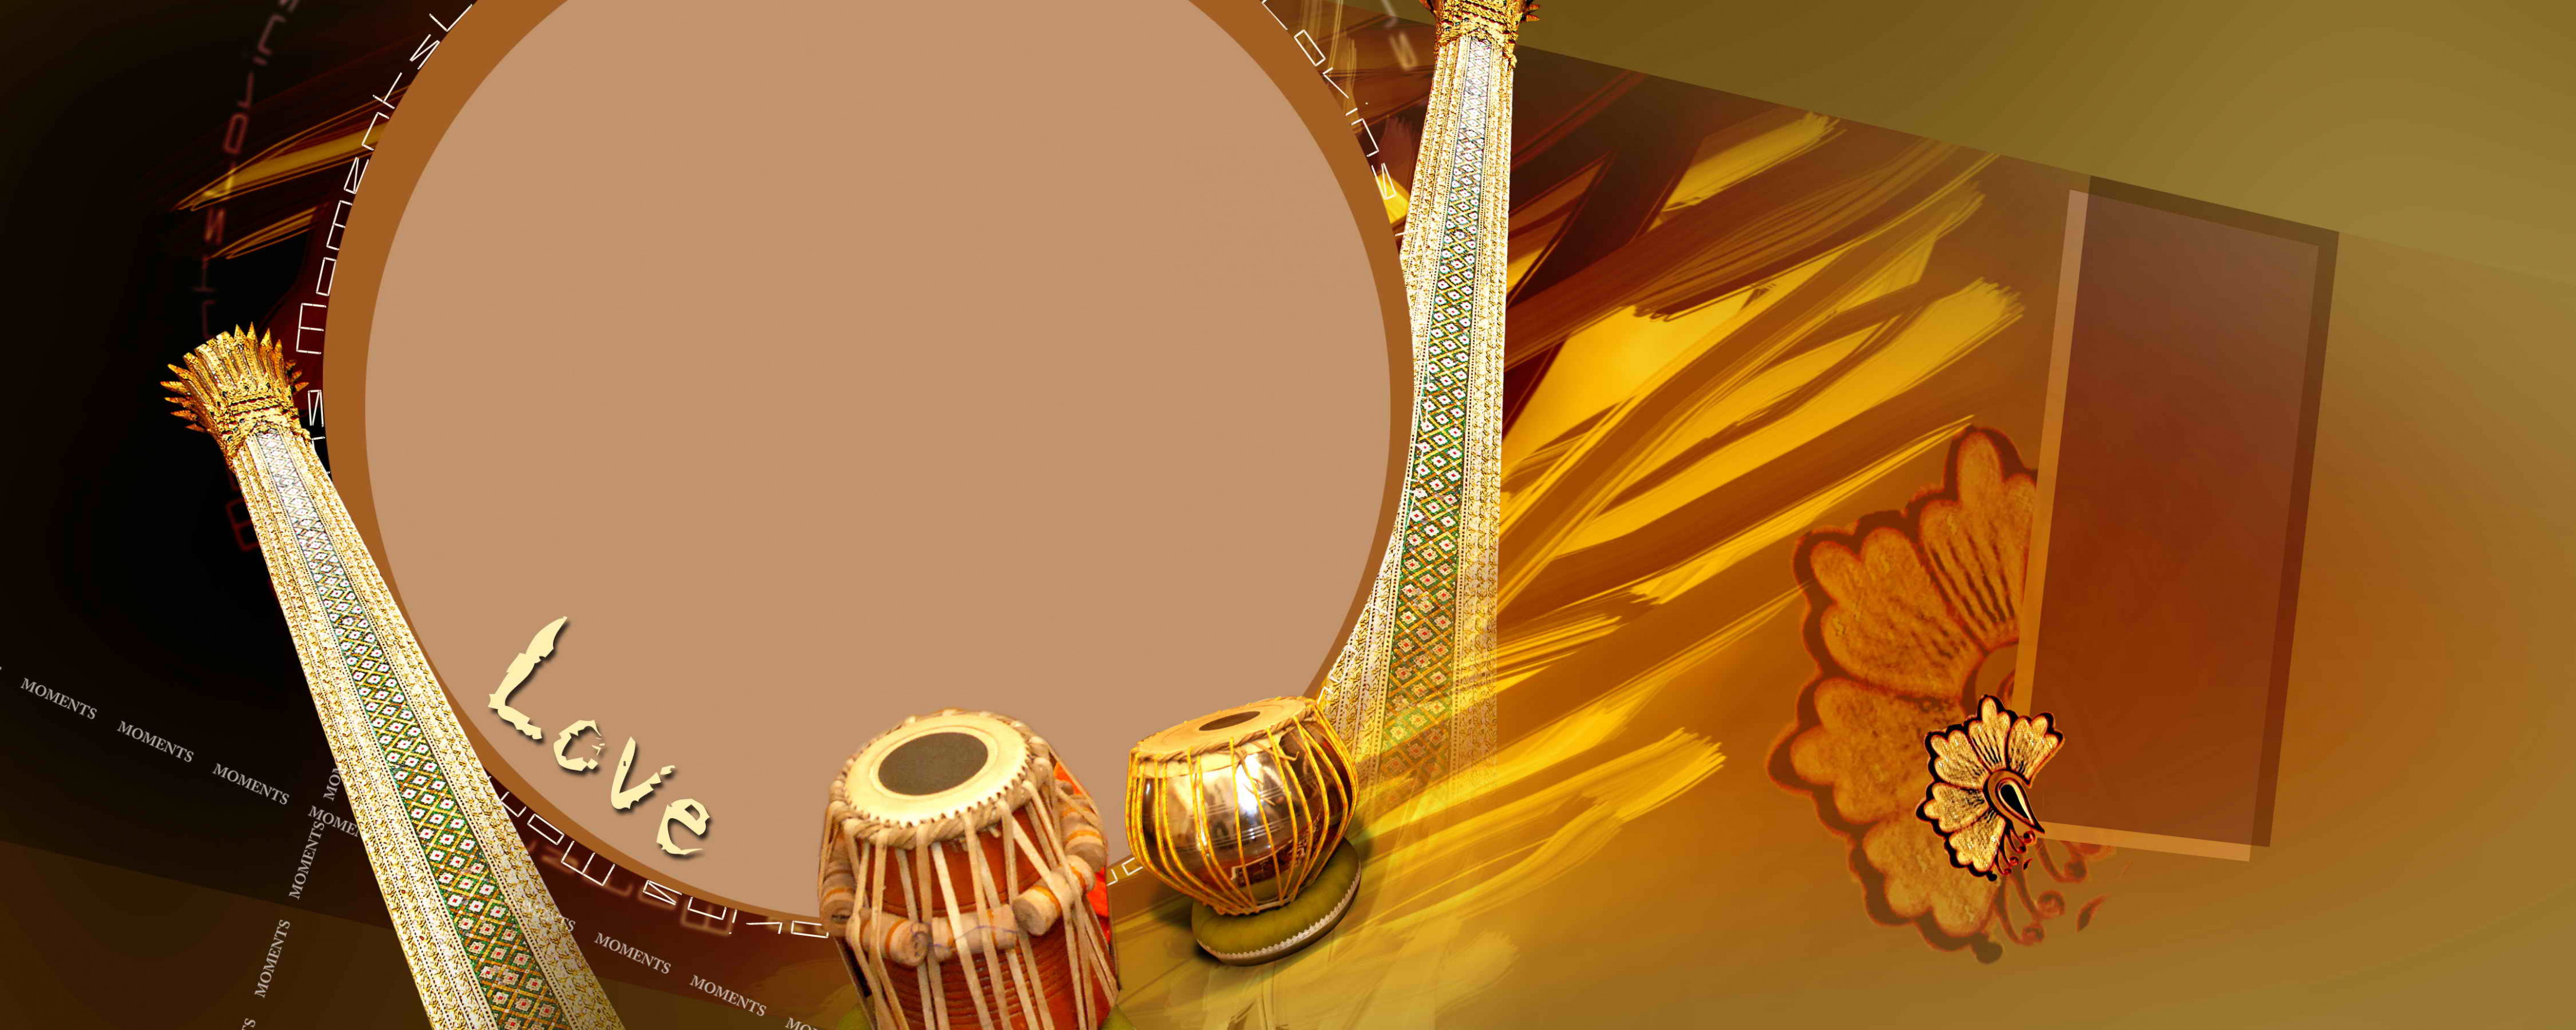 Indian Wedding Photo Background Psd Free Download | www ...